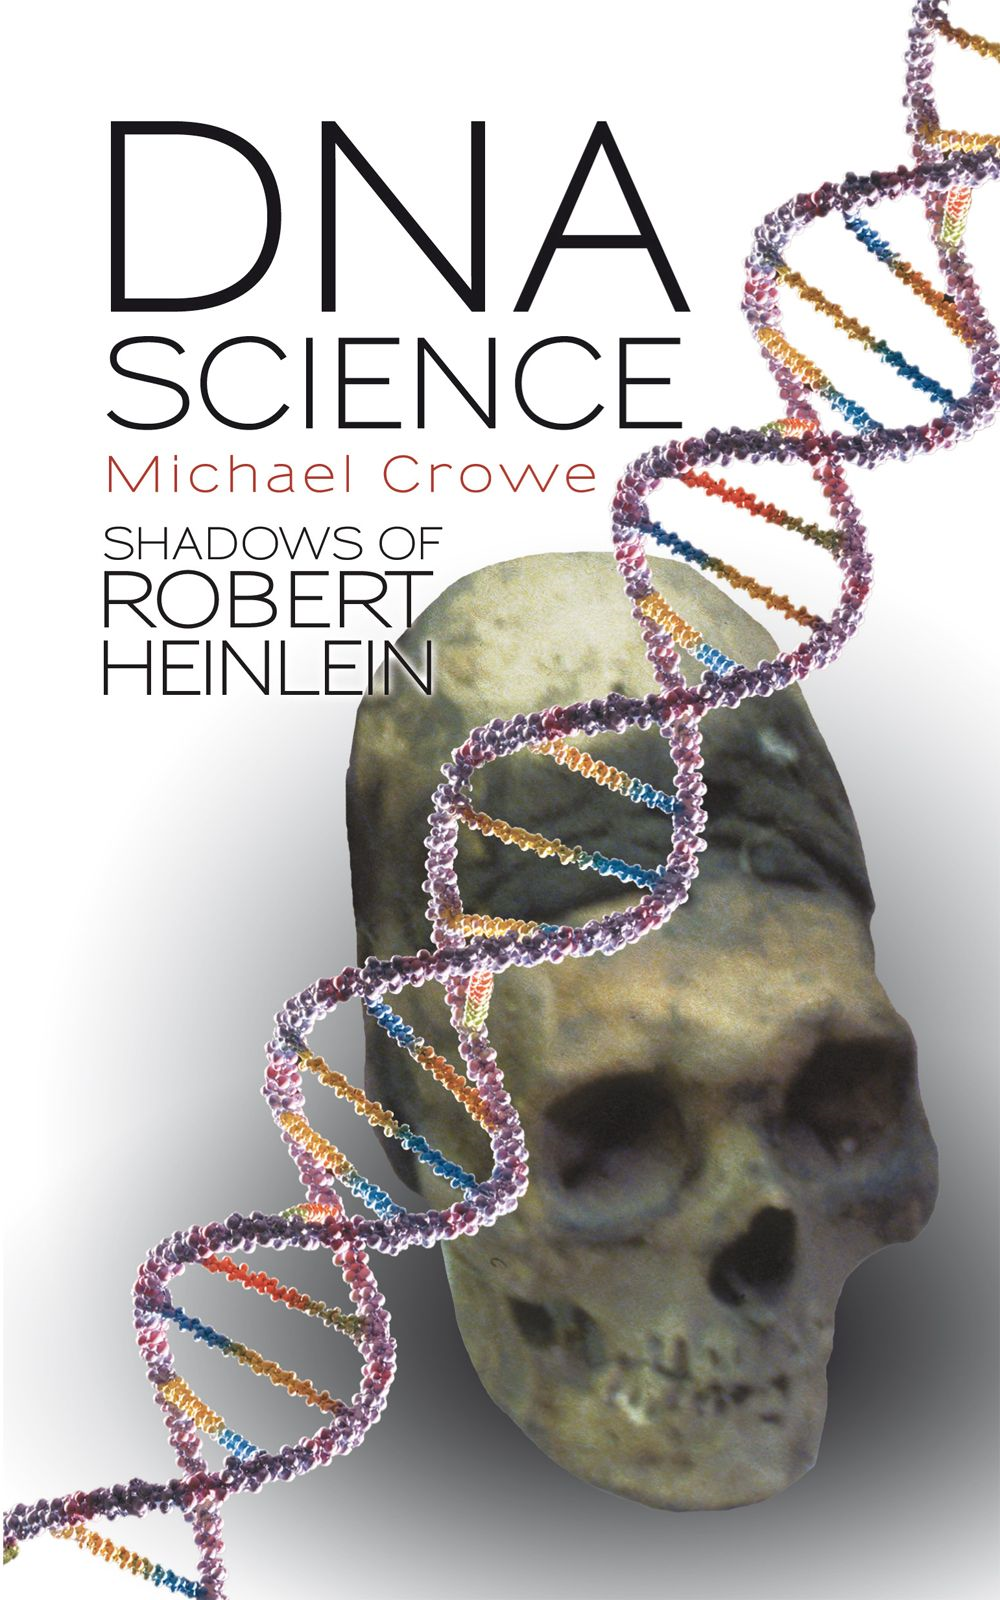 DNA Science Shadows of Robert Heinlein